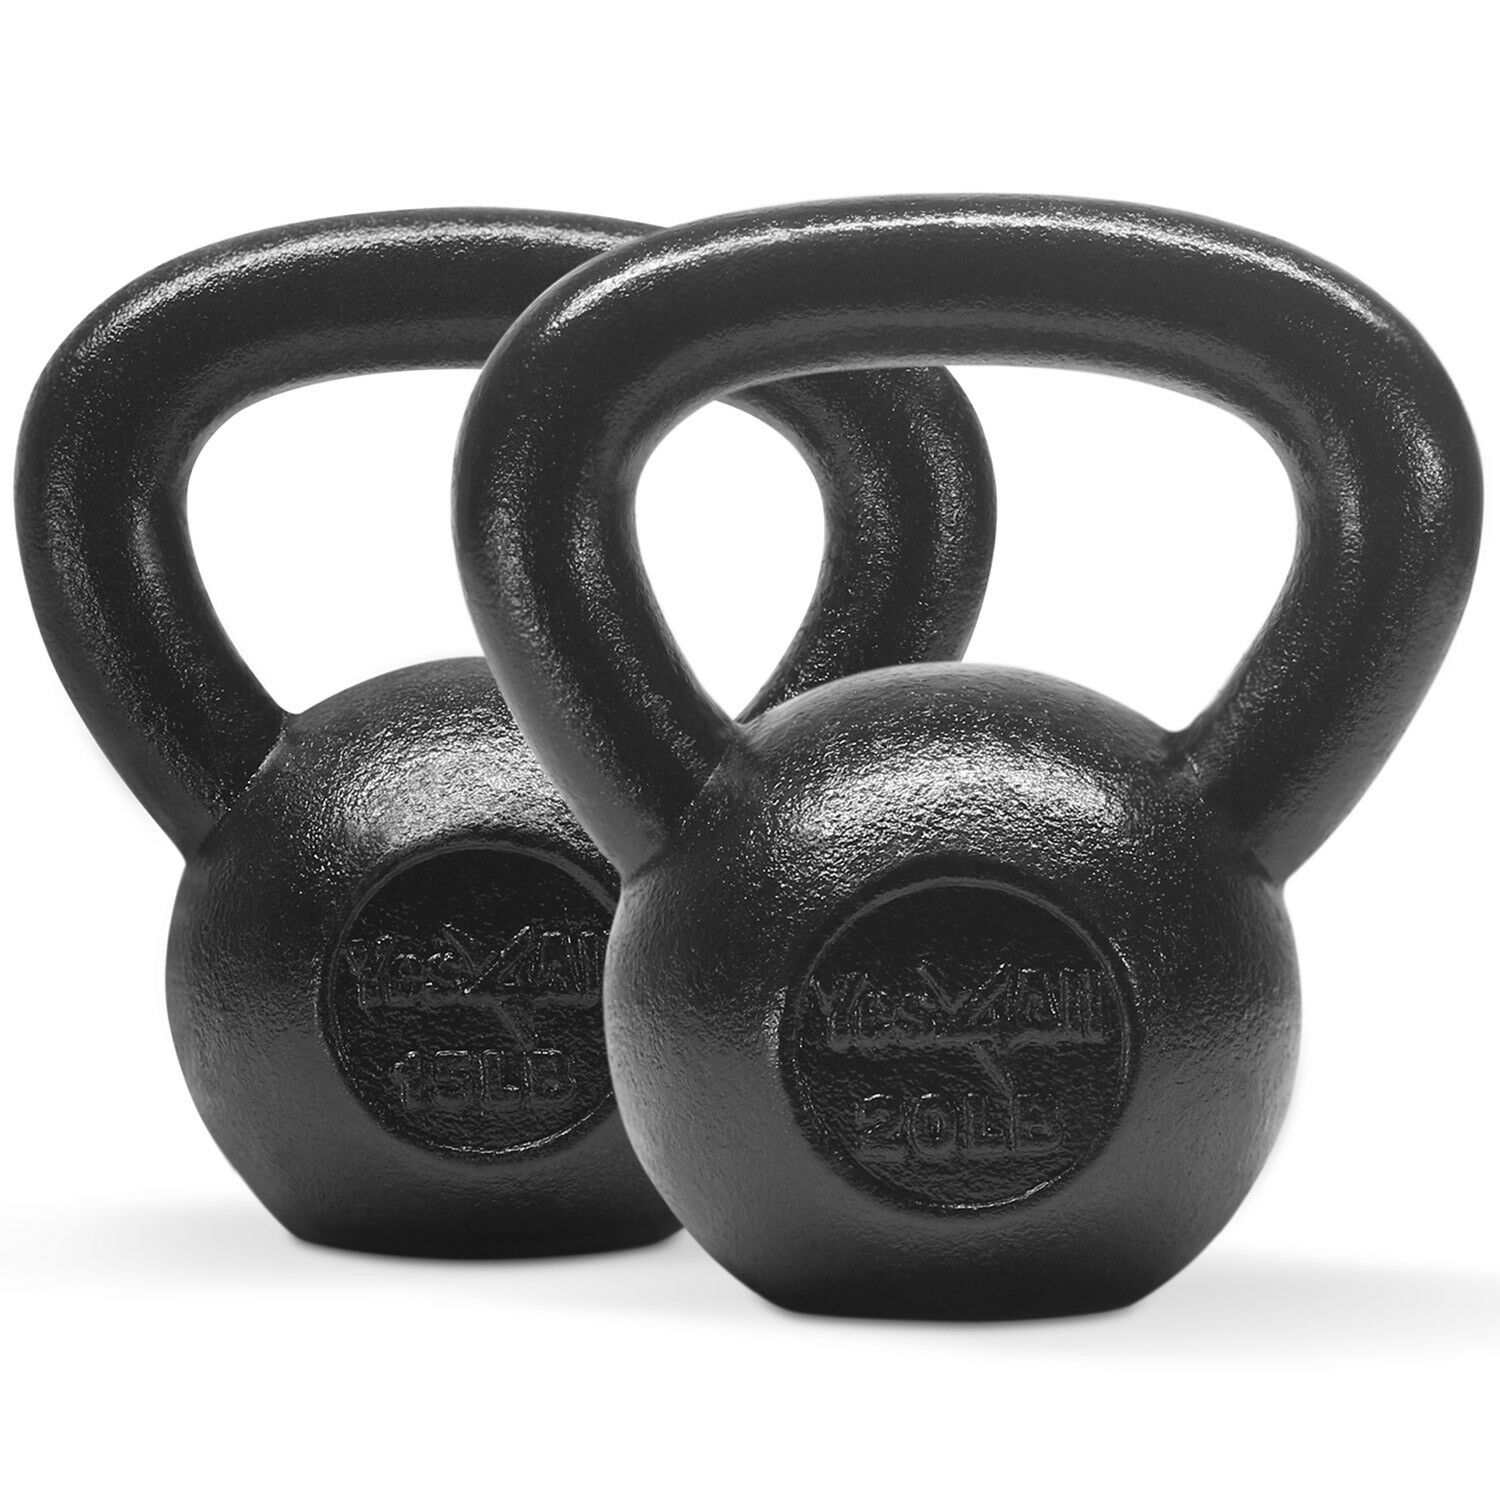 Yes4All Kettlebell Combo Set 15 +  20 lbs - Cast Iron Kettlebell Weights  the best after-sale service